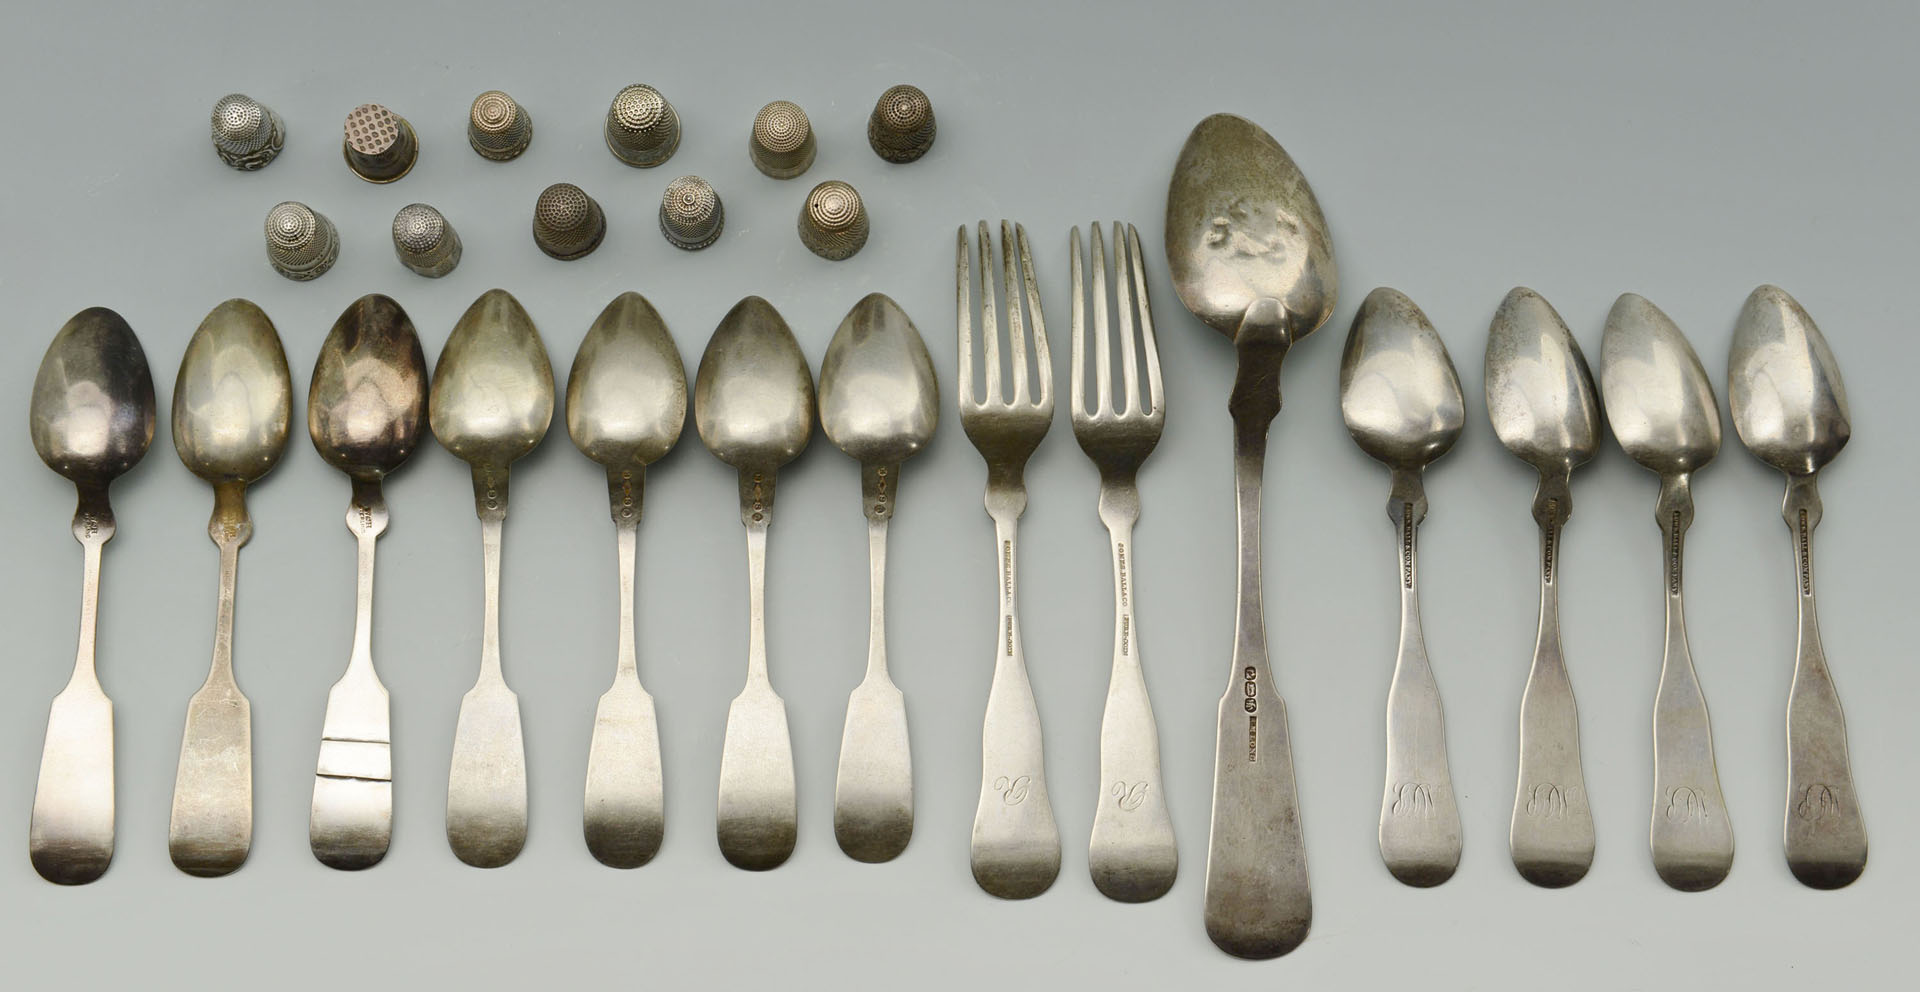 14 pcs. coin and sterling silver flatware & 11 thi